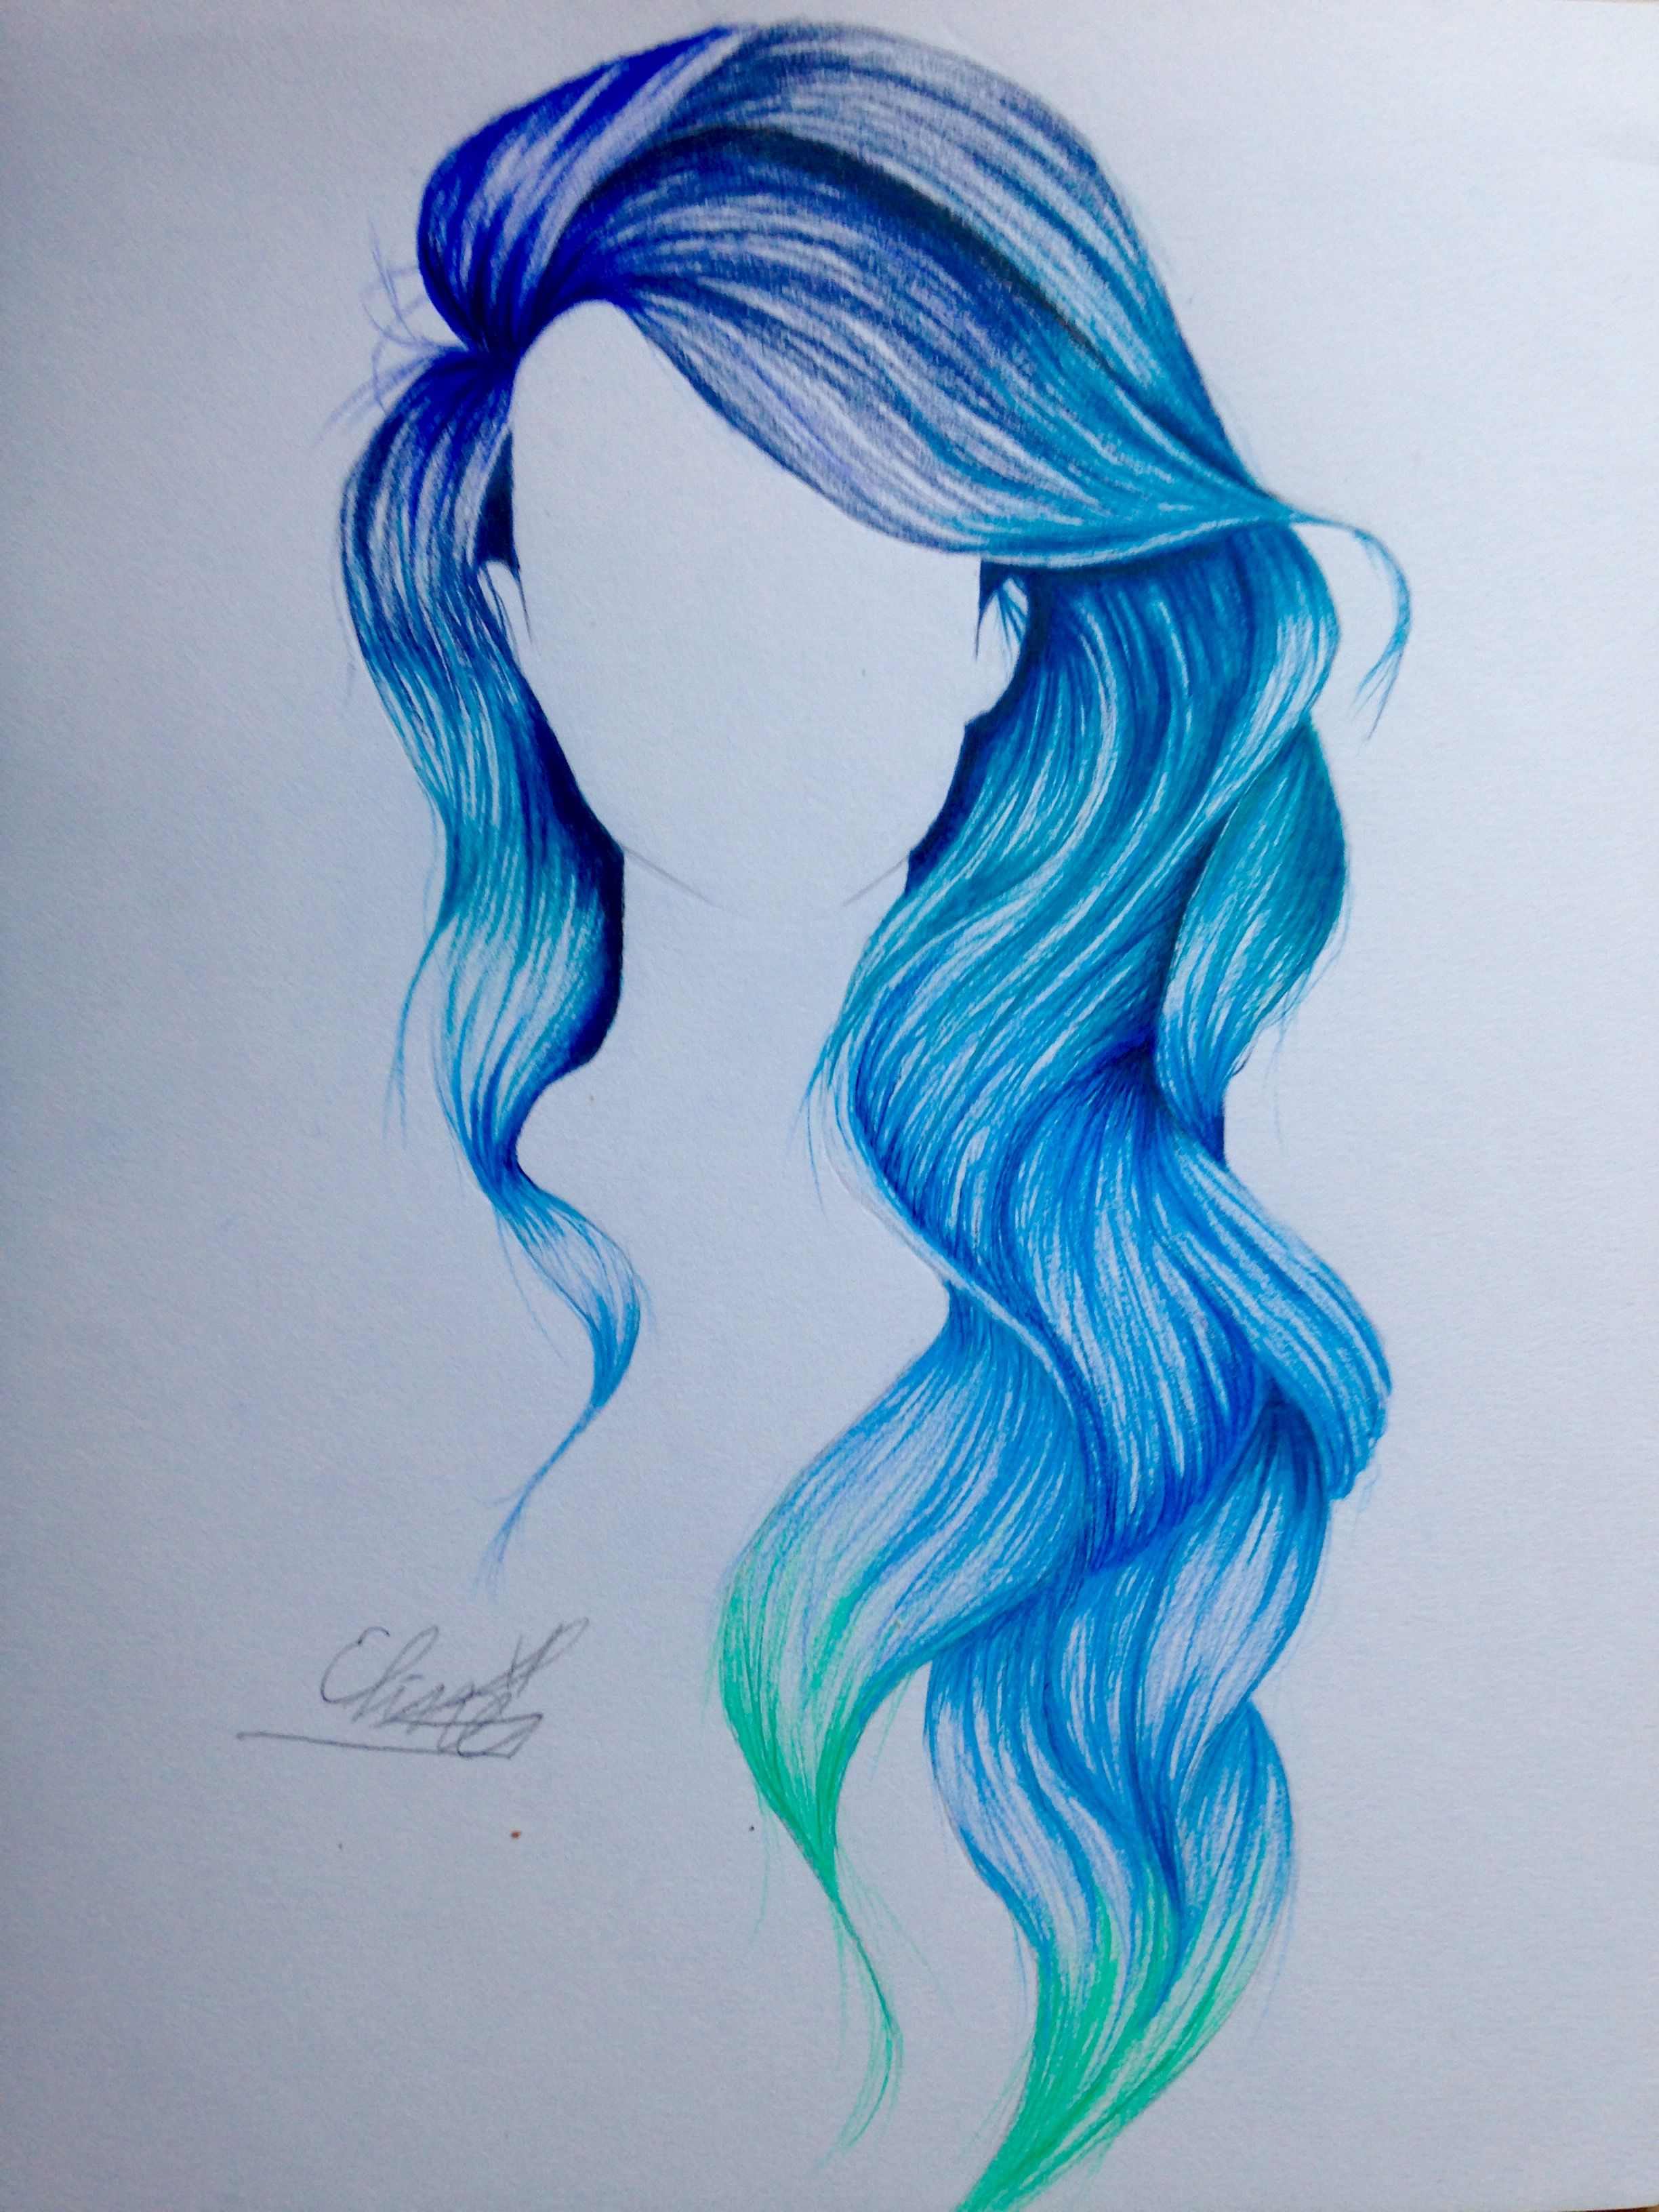 Blue mermaid ombré hair drawing Was so much fun to draw